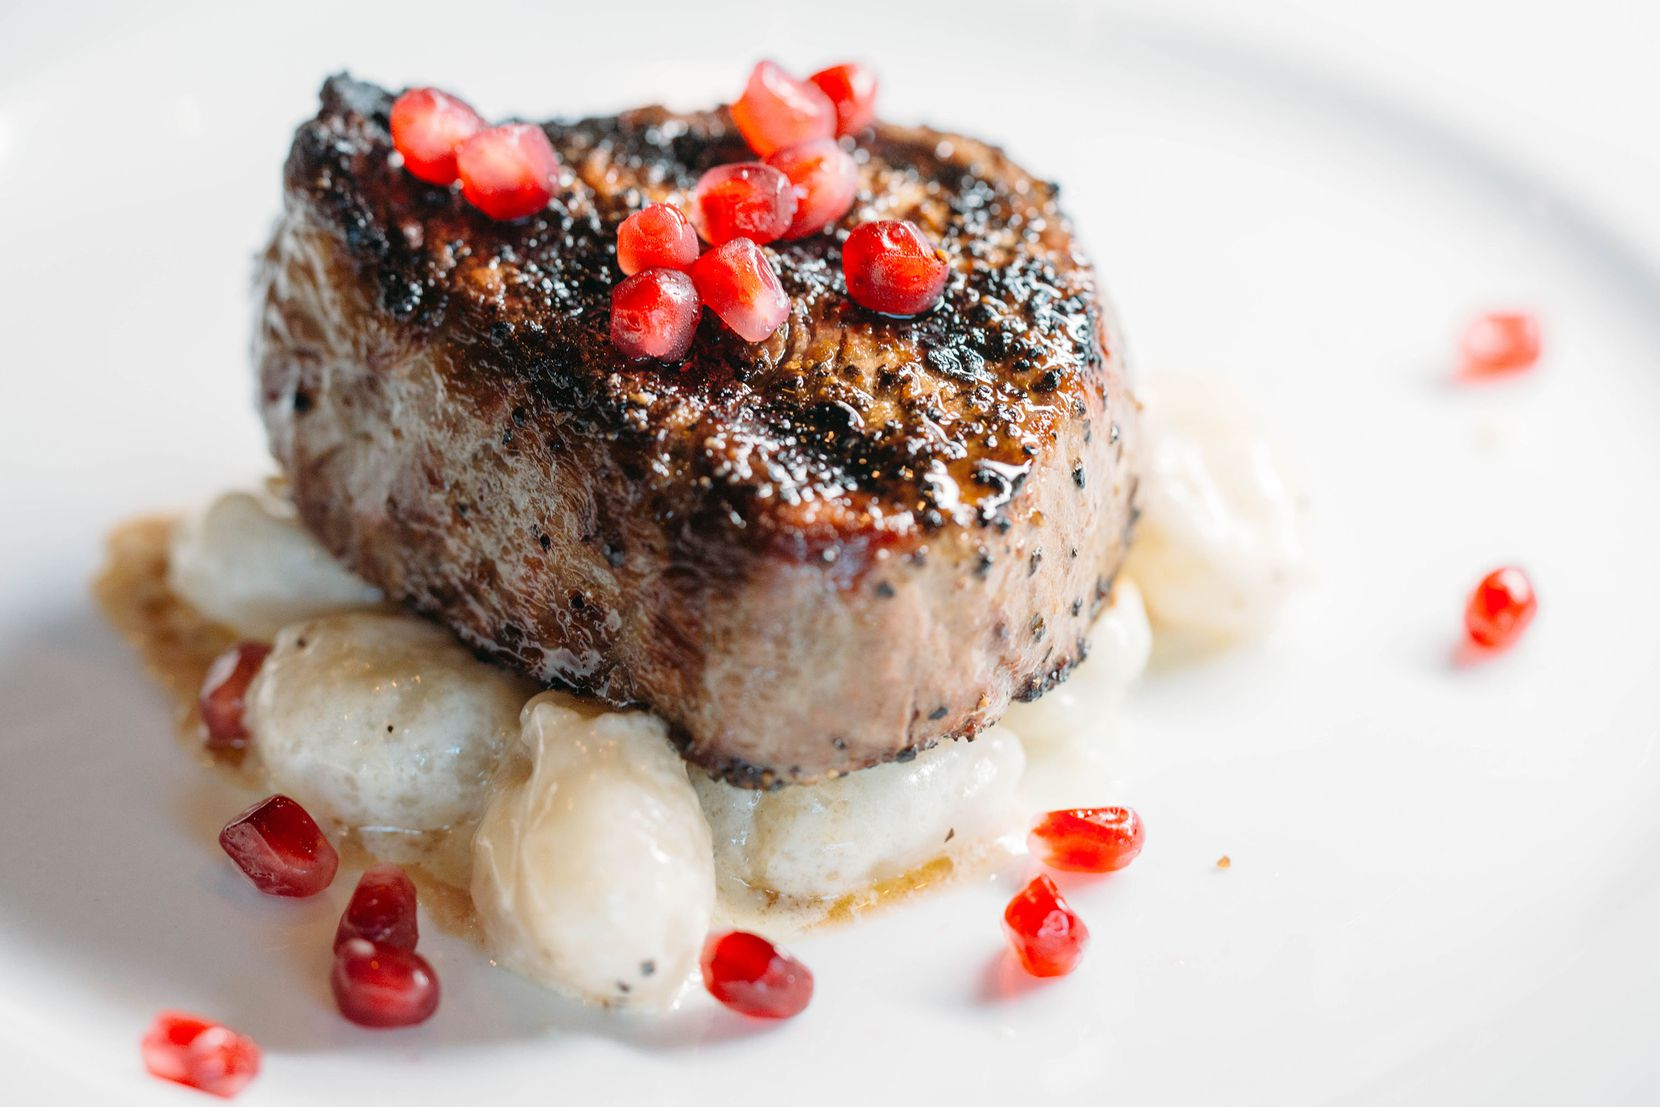 Gorji's Father's Day takeout menu includes a 6-ounce prime beef tenderloin with gnocchi gorgonzola.